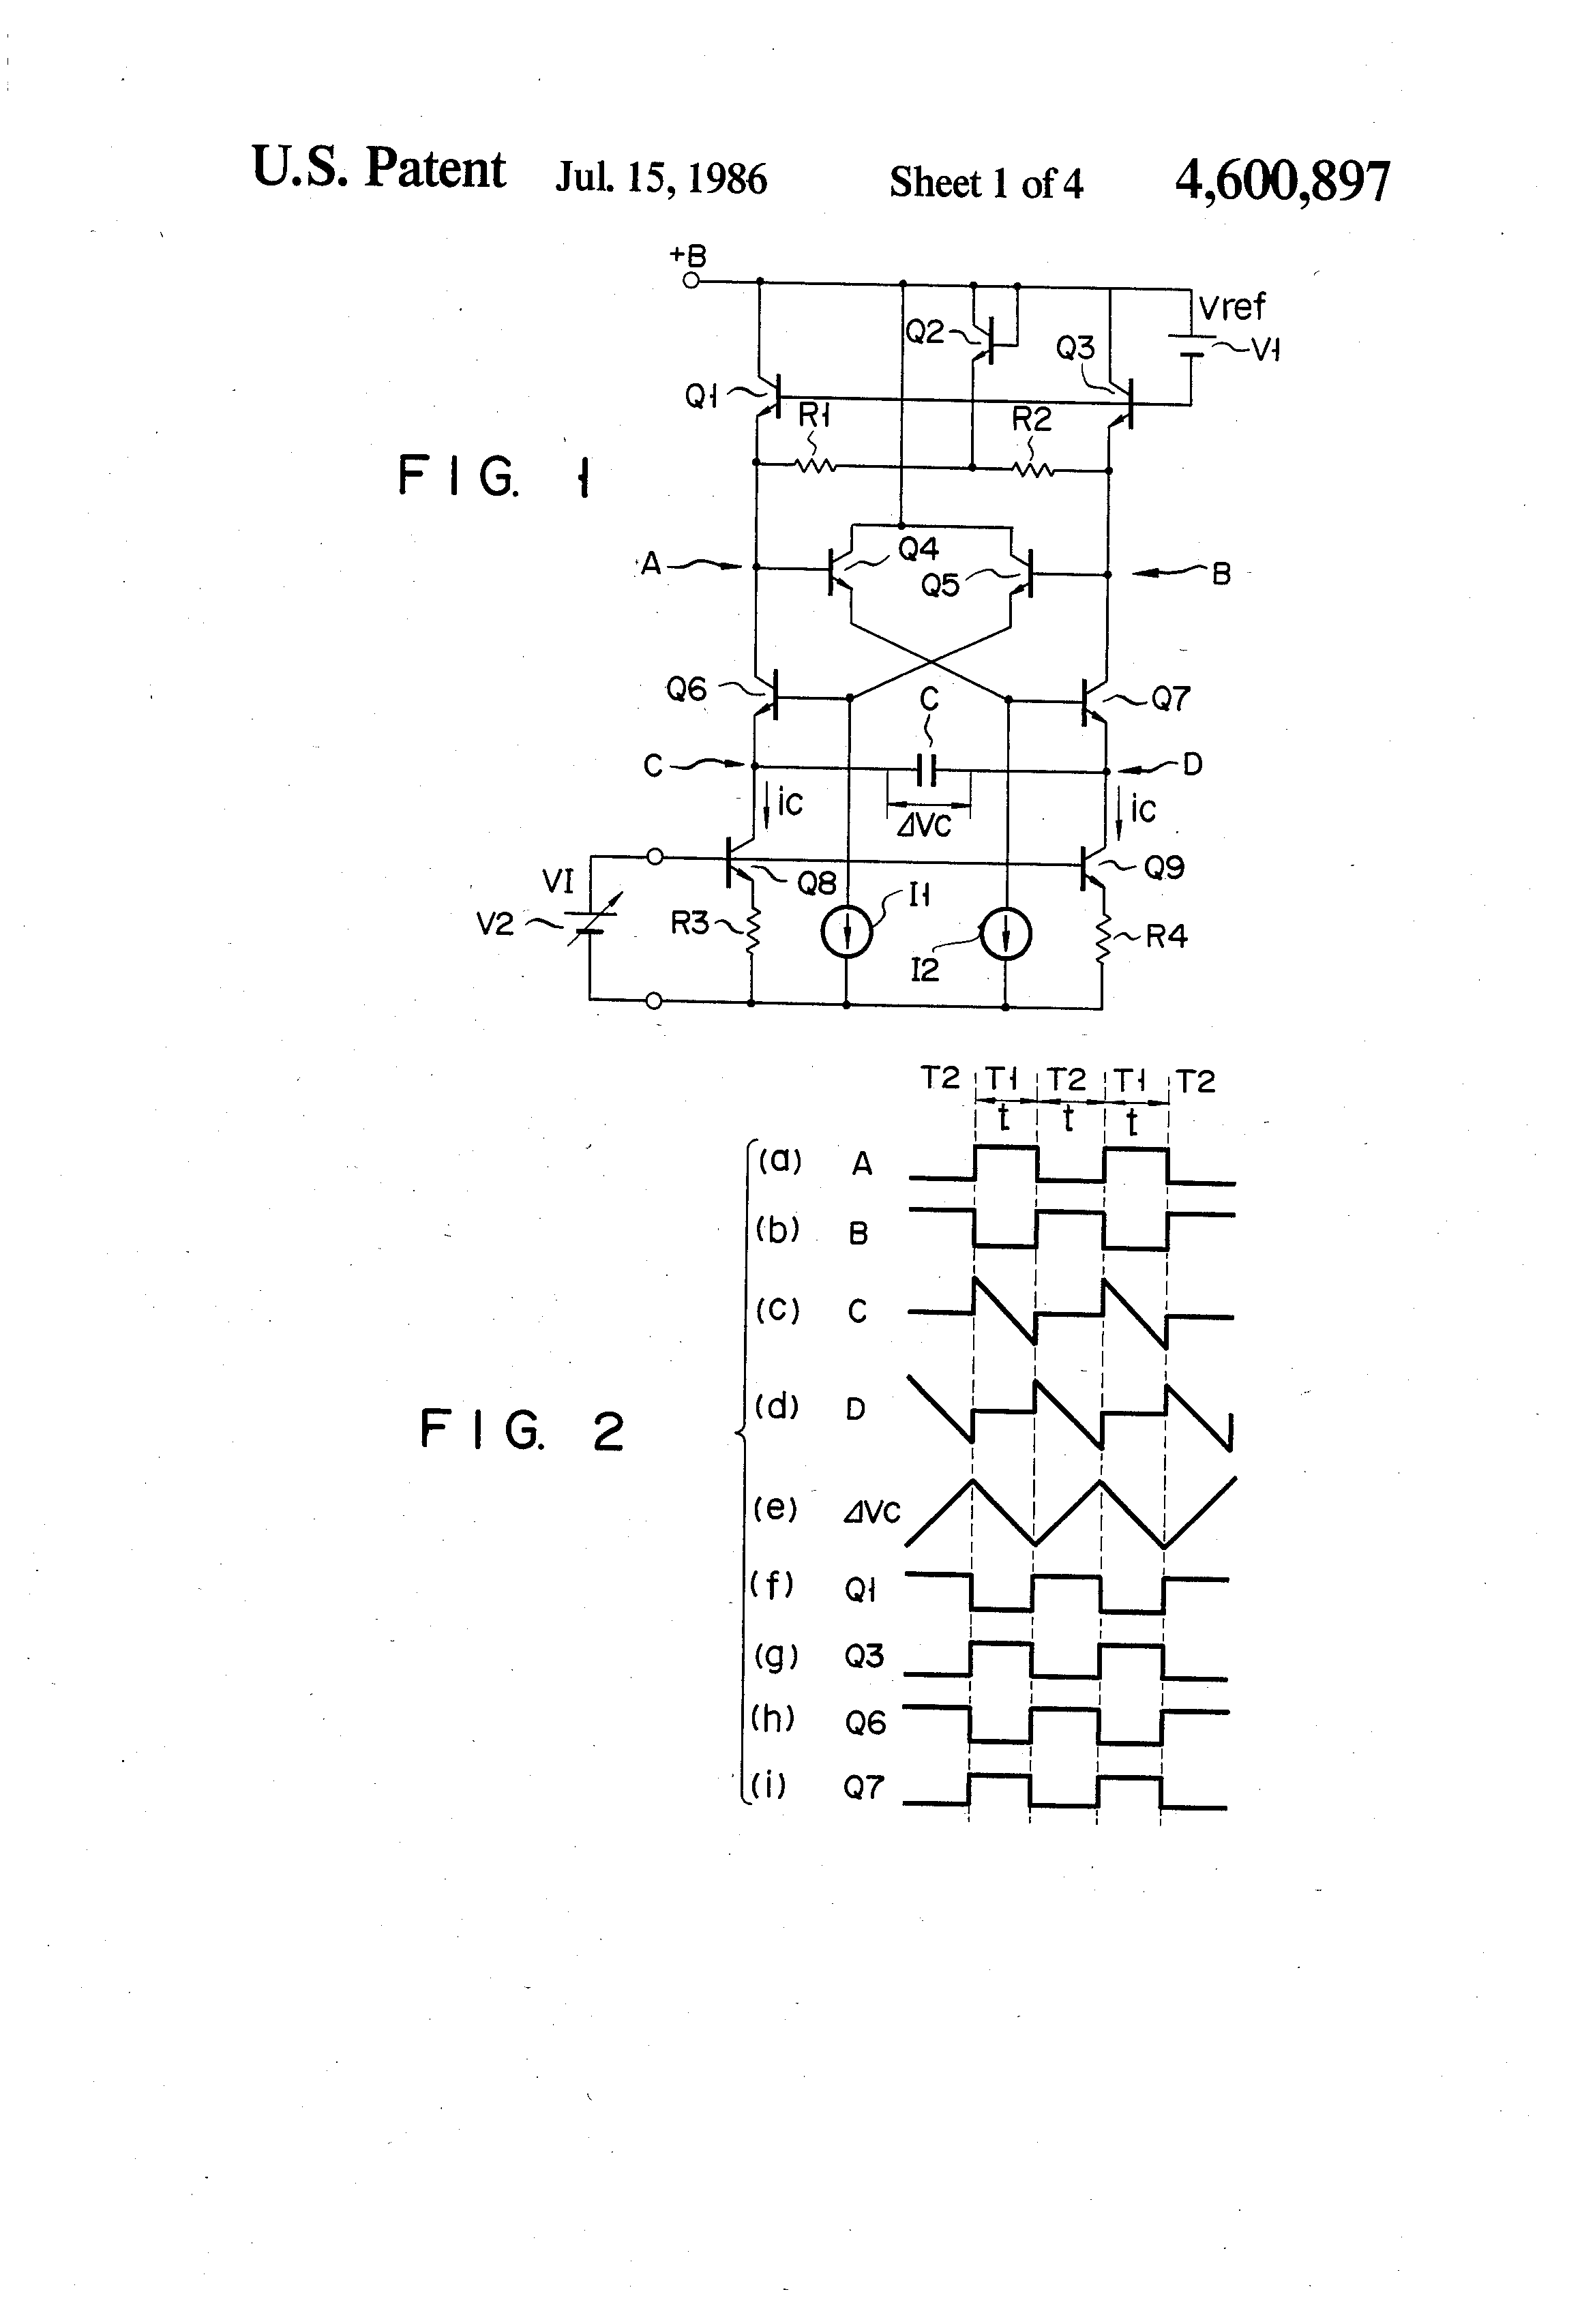 Patent Us4600897 Voltage Controlled Oscillator Of Emitter Coupled Voltagecontrolled Vco Using The Timer 555 Is Shown In Drawing